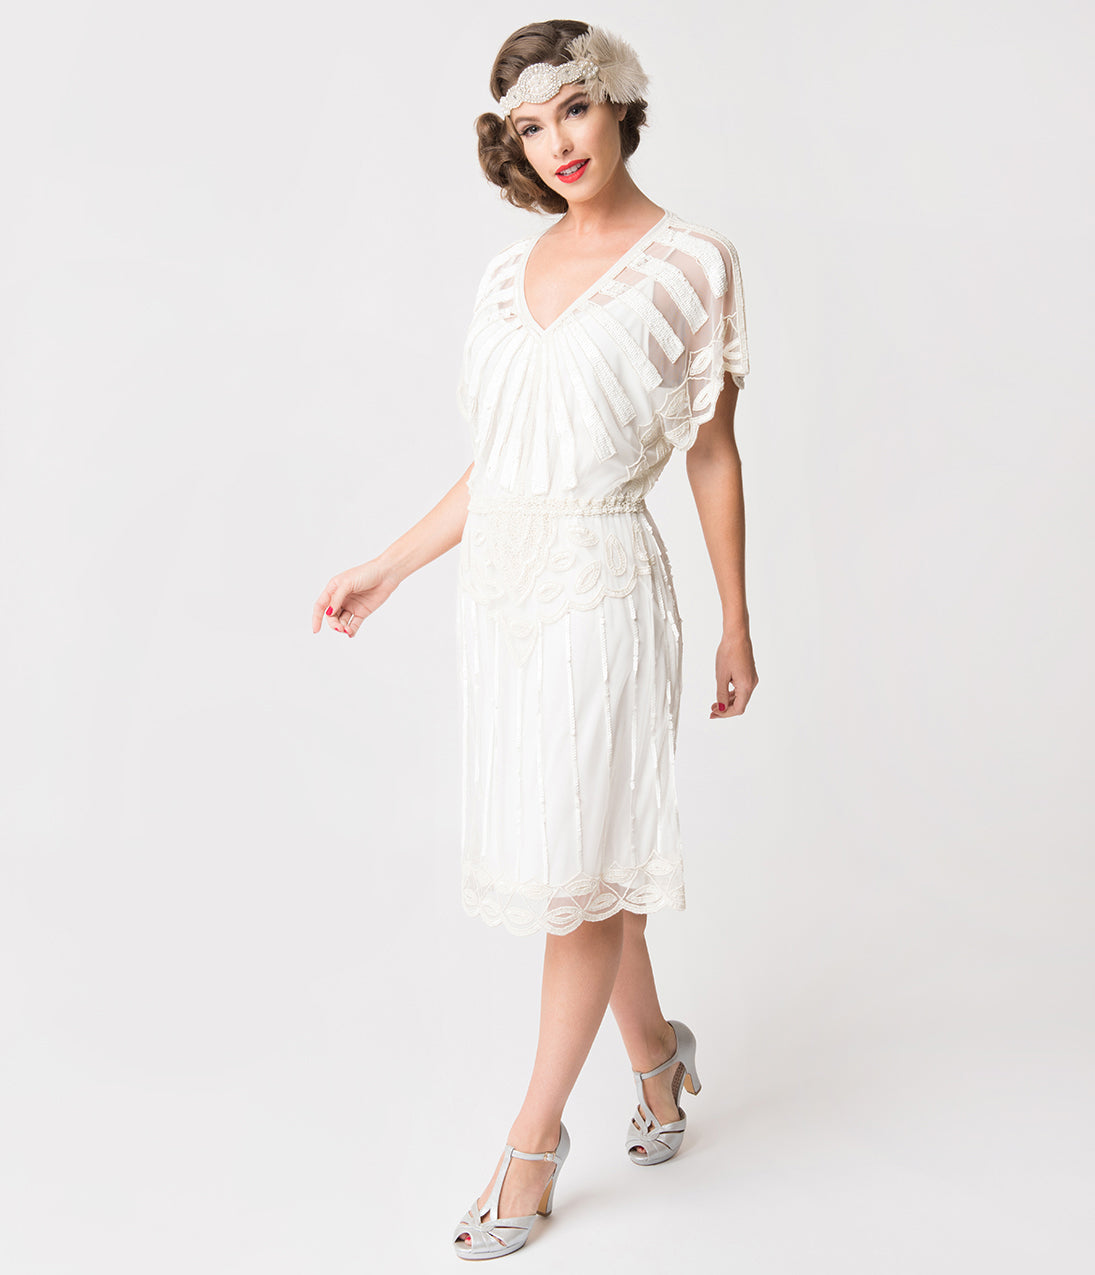 Vintage Inspired Wedding Dress | Vintage Style Wedding Dresses 1920S Style White Bead Embellished Deco Angel Sleeve Flapper Dress $138.00 AT vintagedancer.com